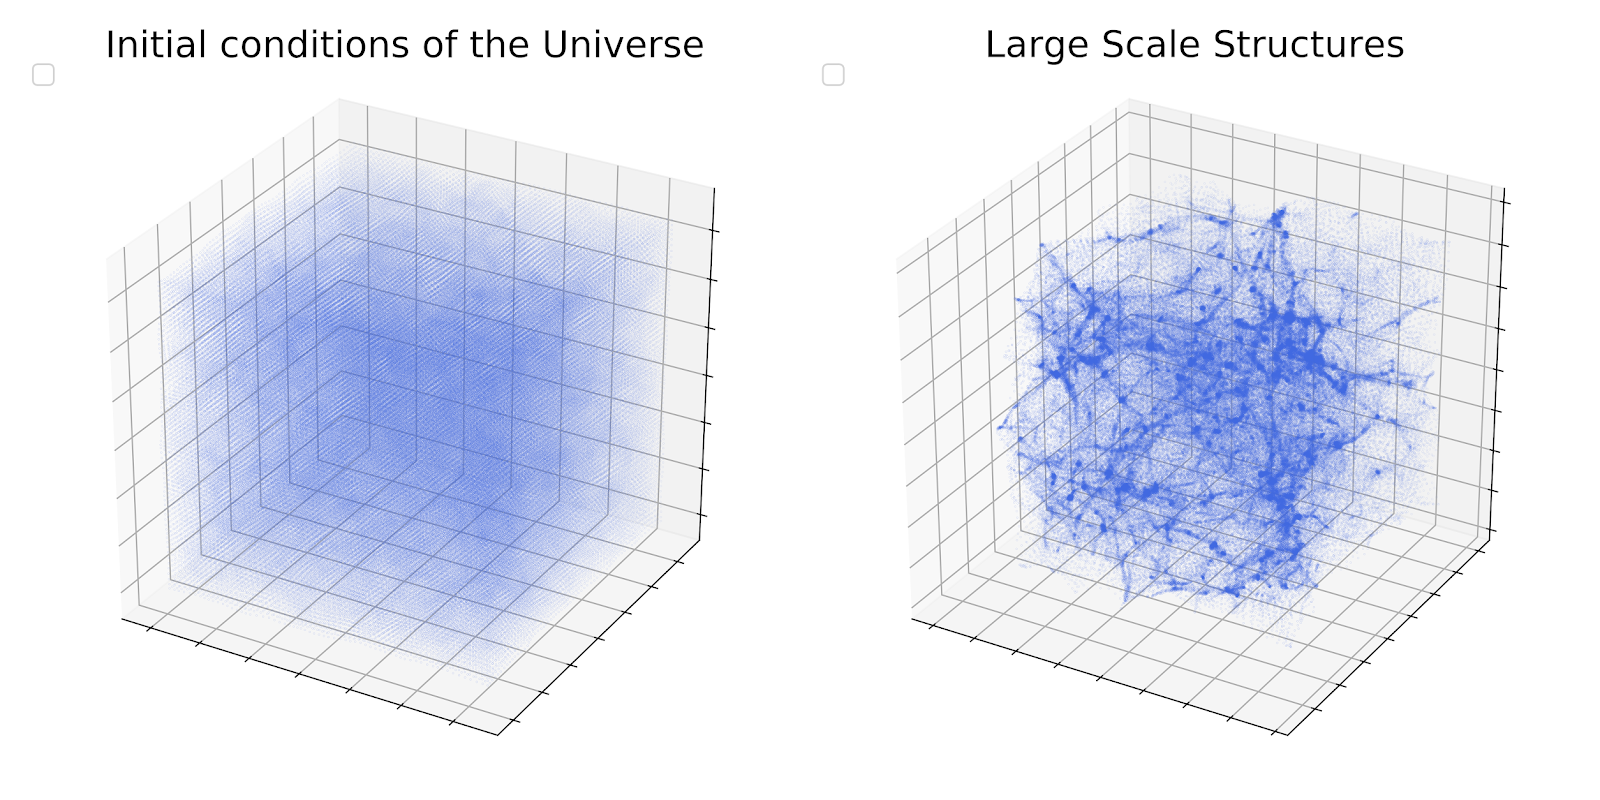 Figure 2. (Left) The initial distribution of matter in the Universe (Right) The final distribution of matter, at the final snapshot of simulation